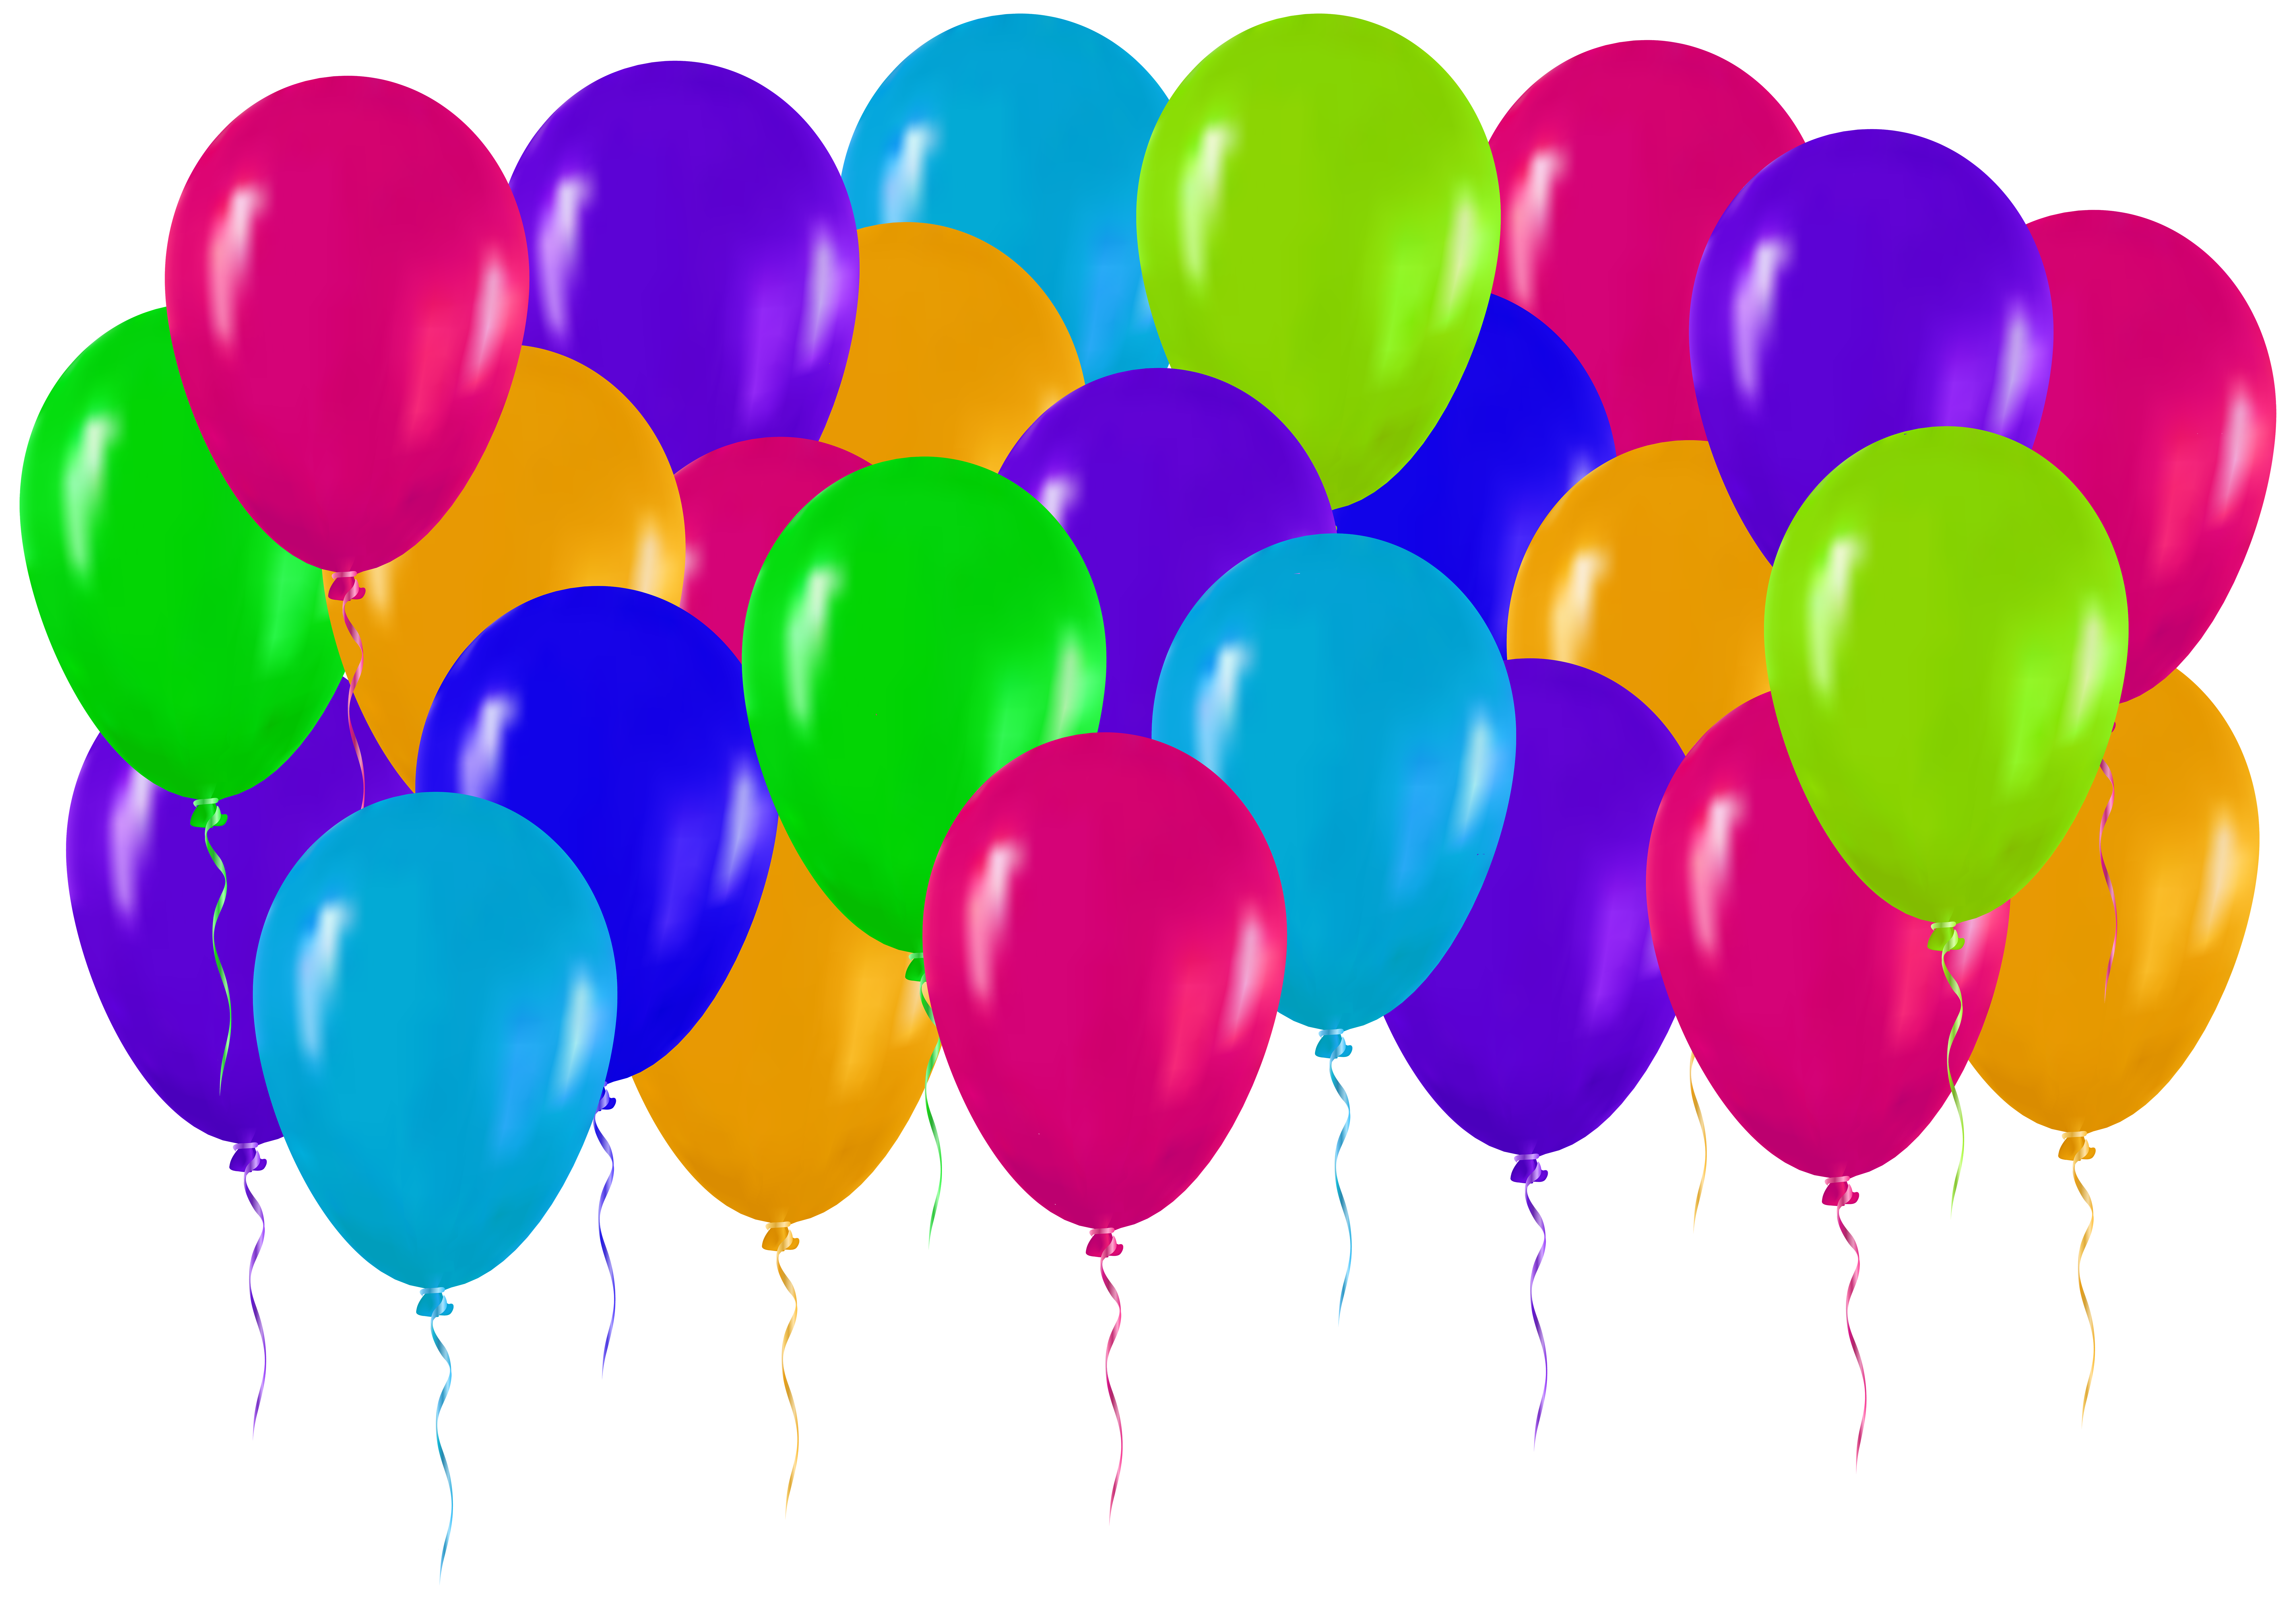 Arch clipart colorful balloon Colorful Best Art Clipart Clip